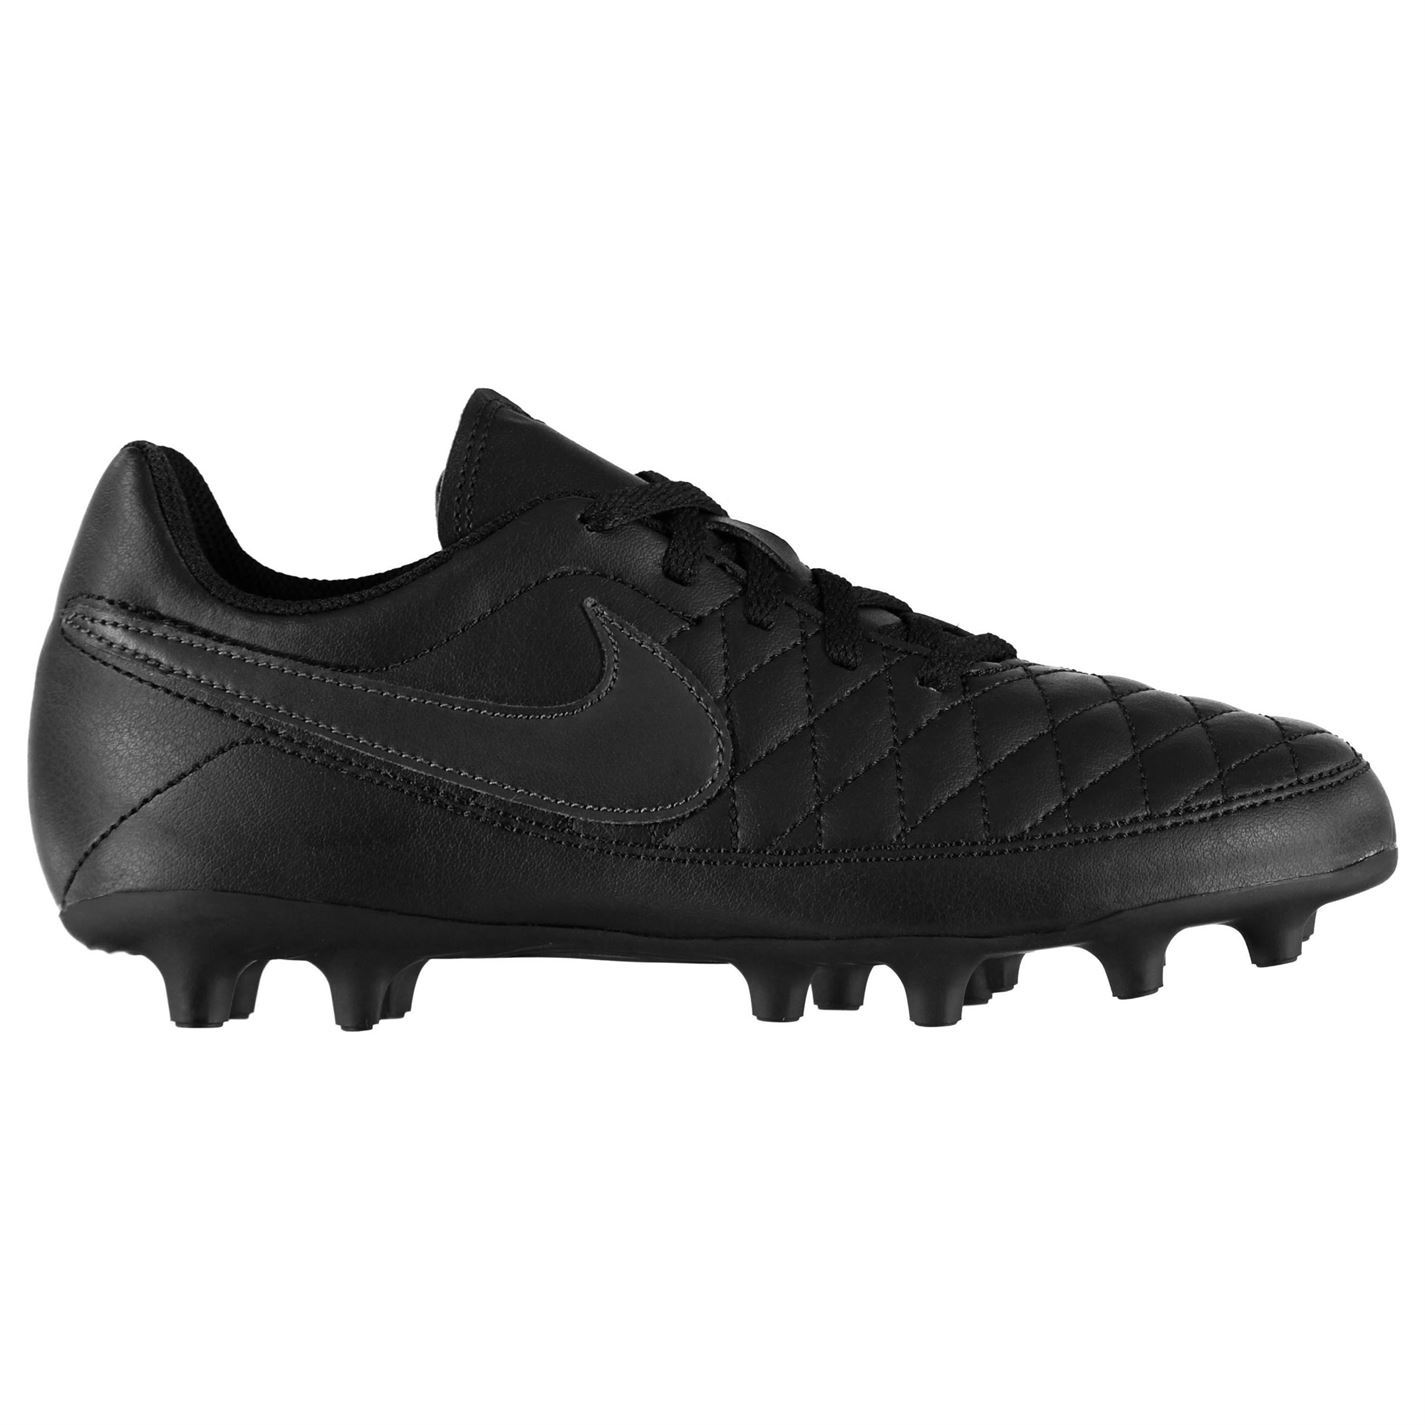 Nike-majestry-FG-Firm-Ground-Chaussures-De-Football-Enfants-Football-Chaussures-Crampons miniature 5